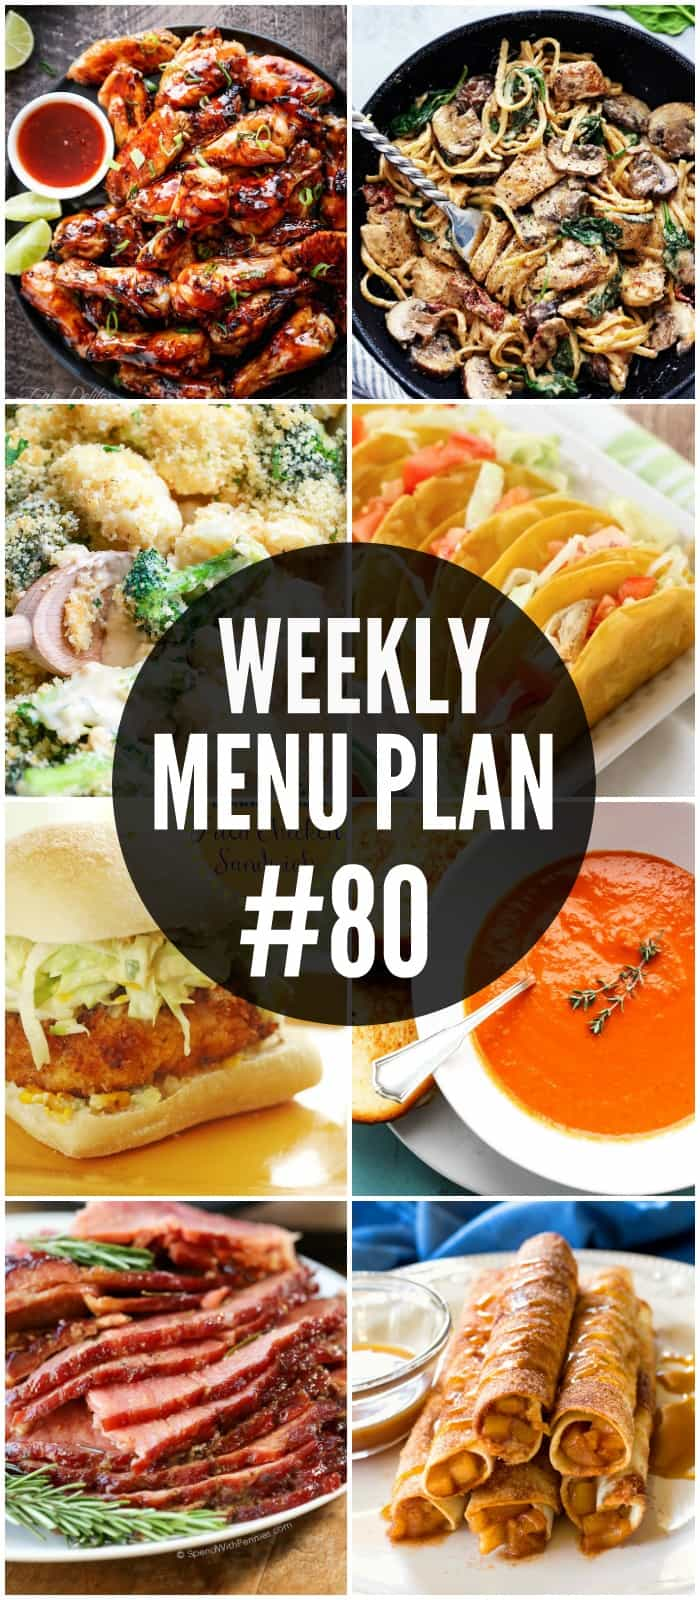 Make getting dinner on the table a snap with these delicious Menu Plan recipes!